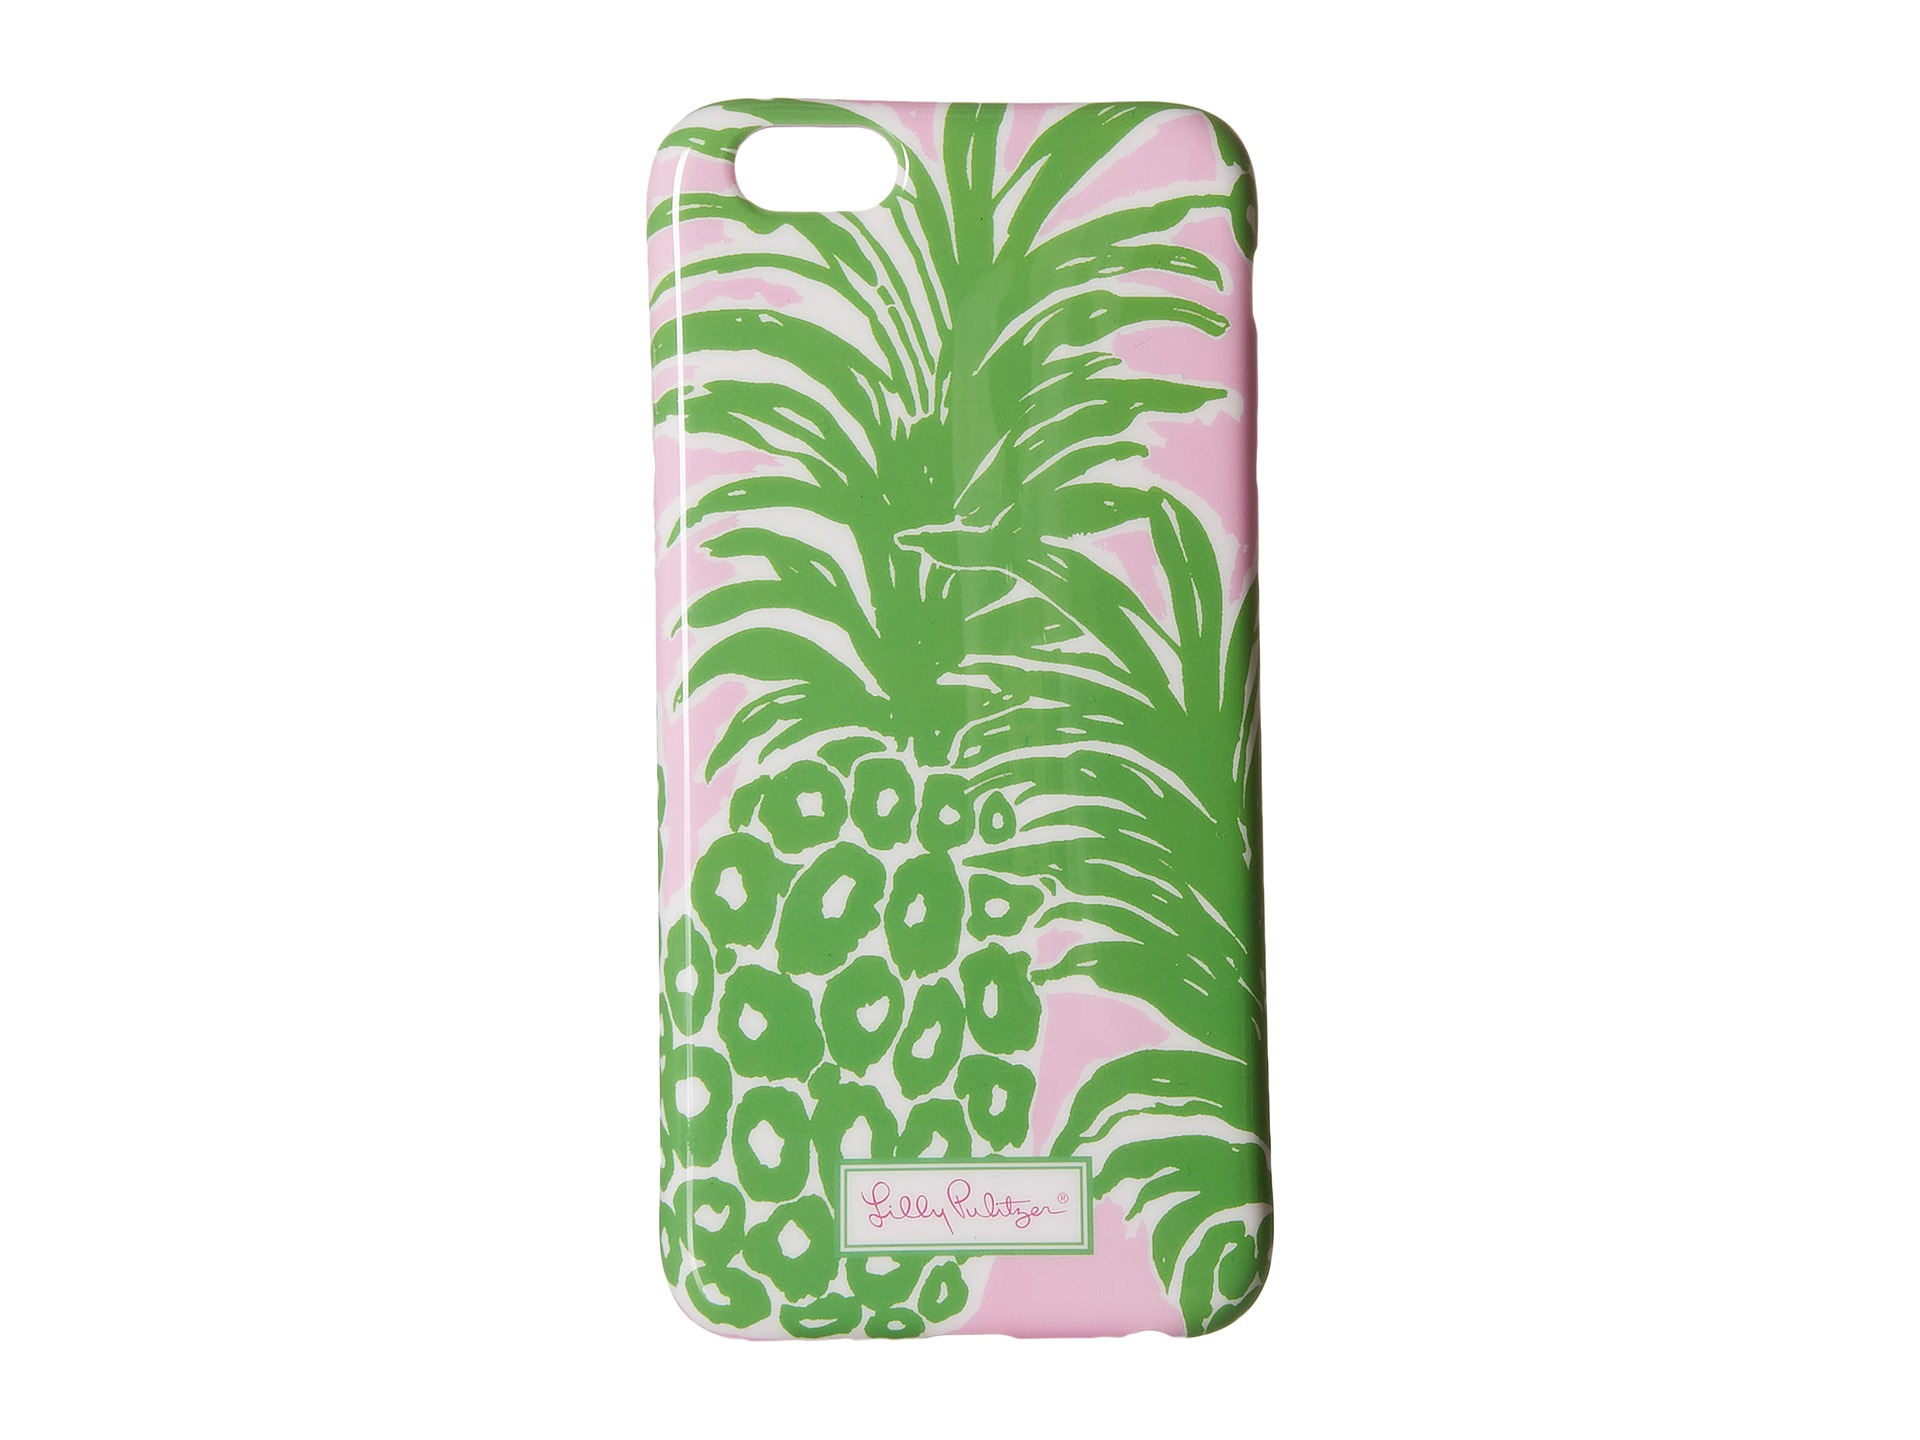 Lilly Pulitzer Phone Case | Lilly Pulitzer Phone | Lilly Pulitzer Elephant Case